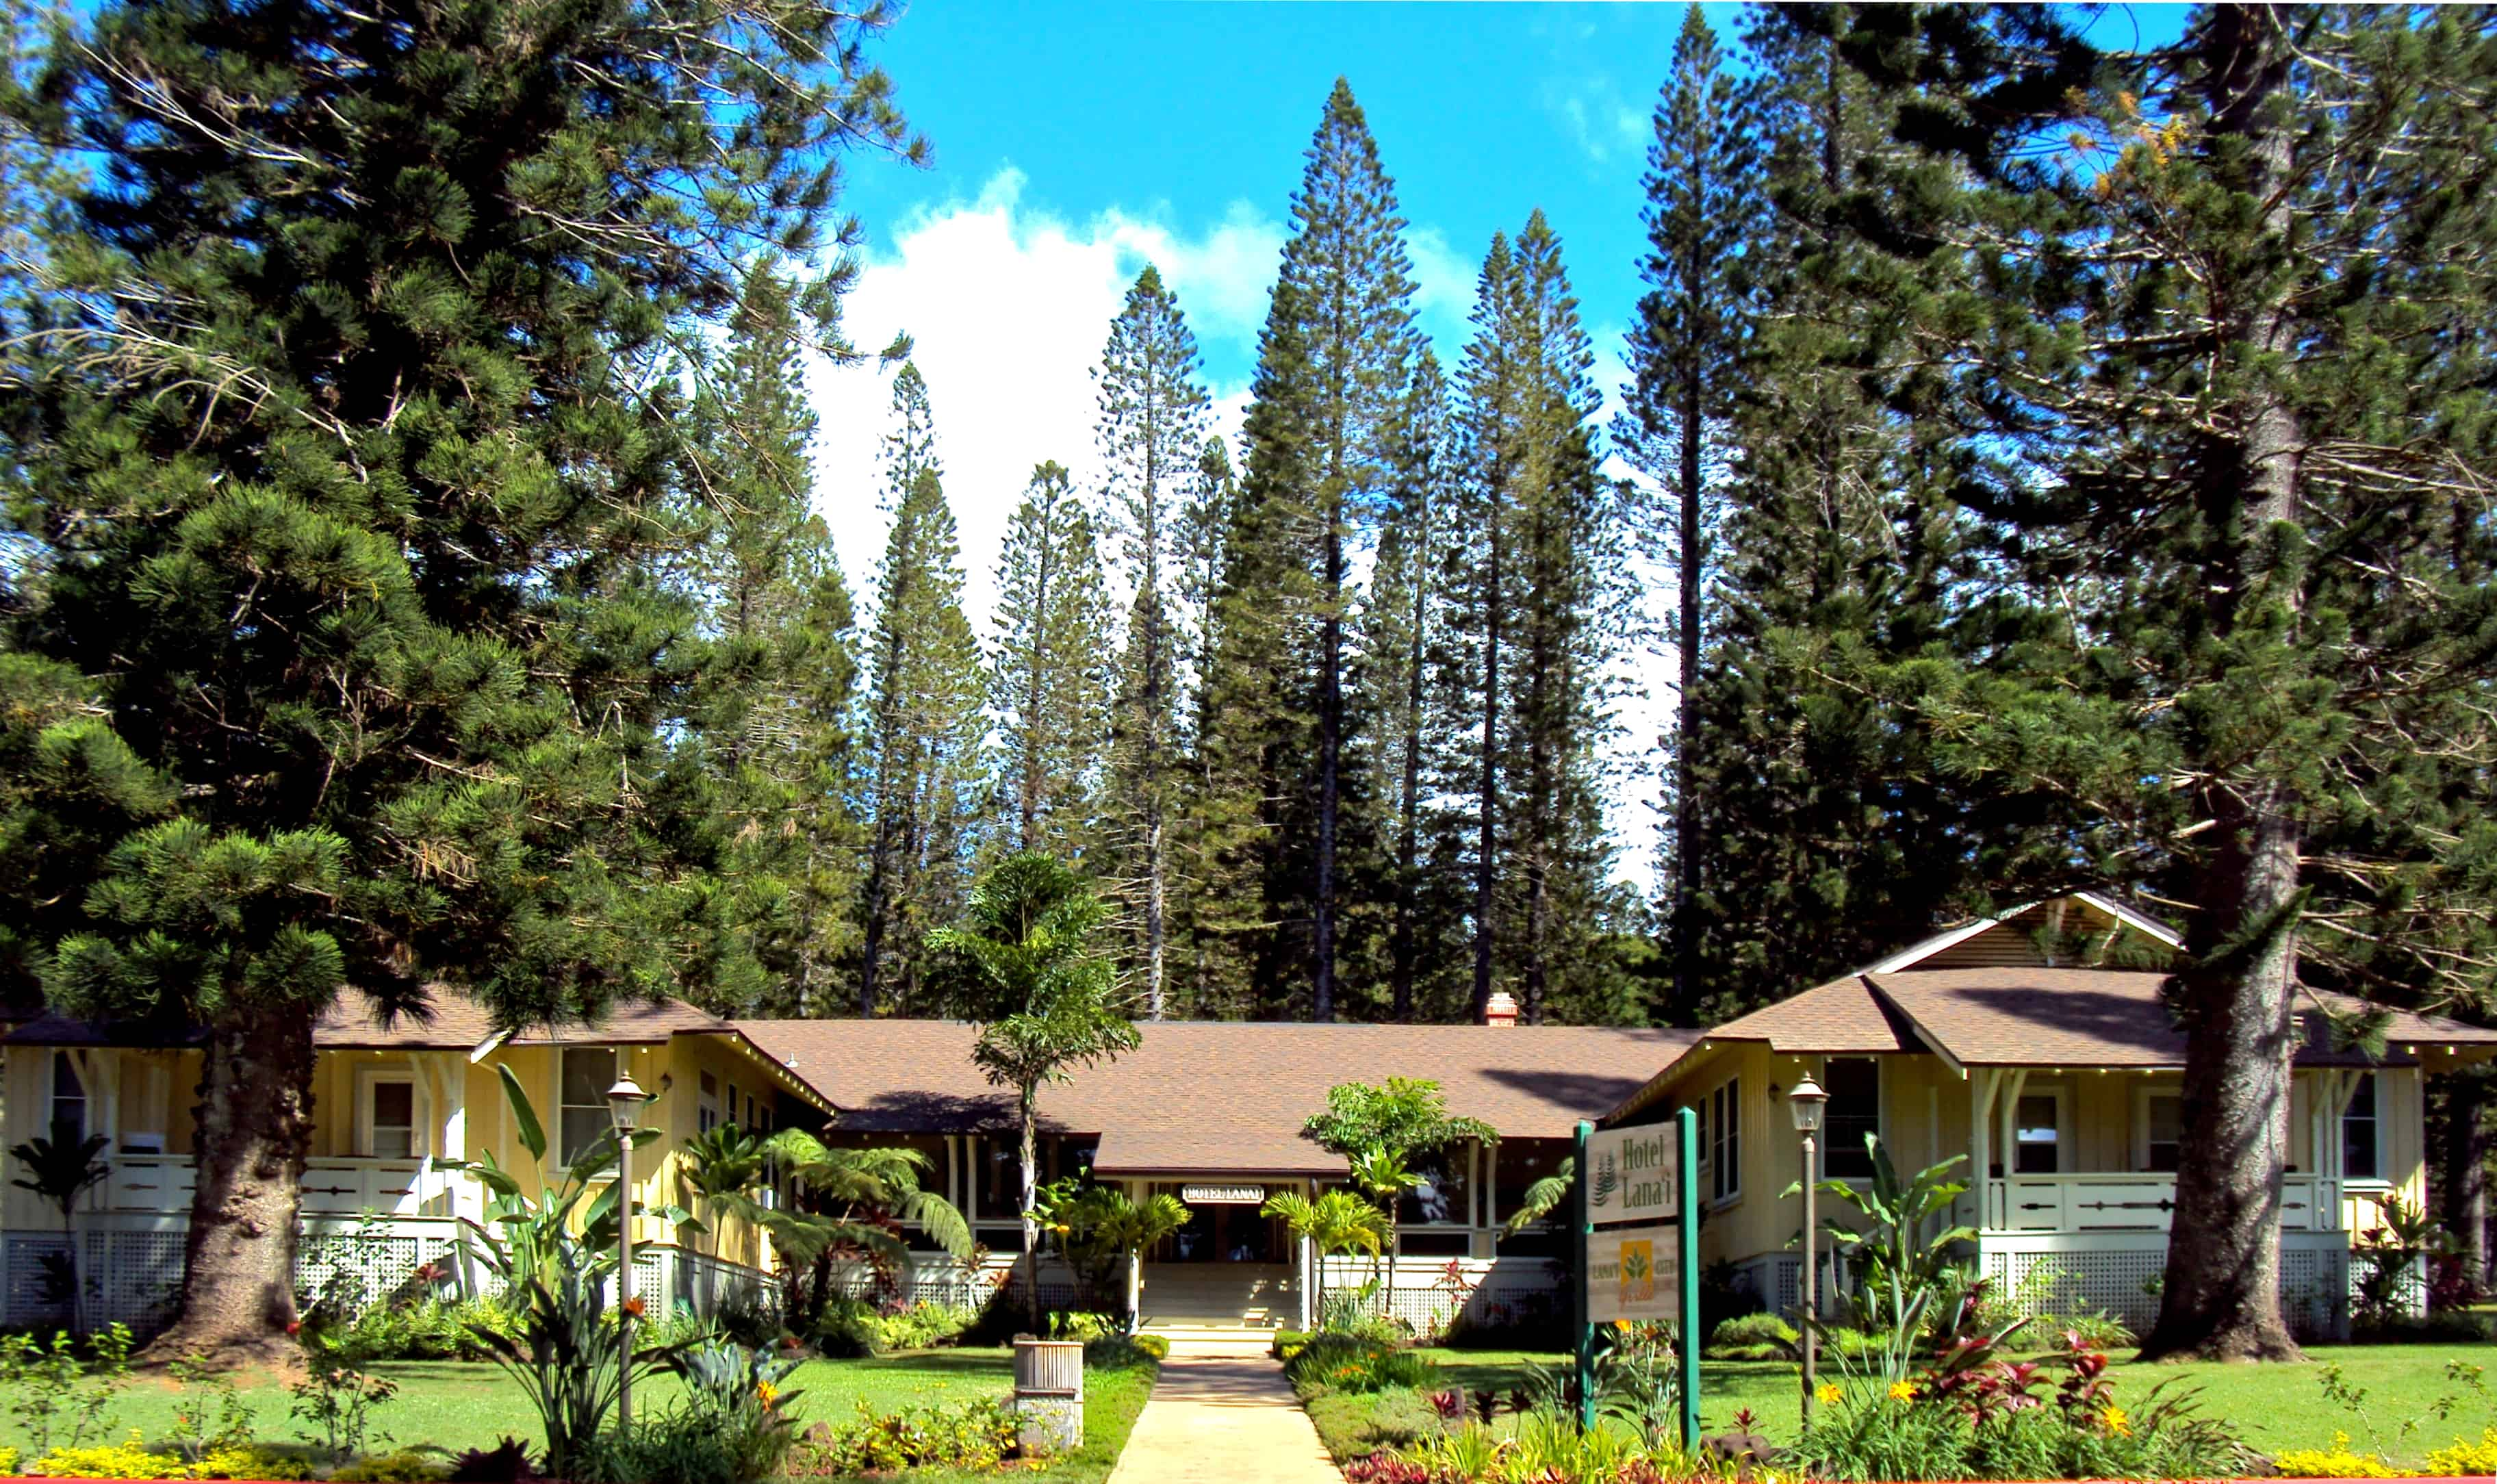 Lanai - Best Hawaiian Islands to Visit on Your Next Trip